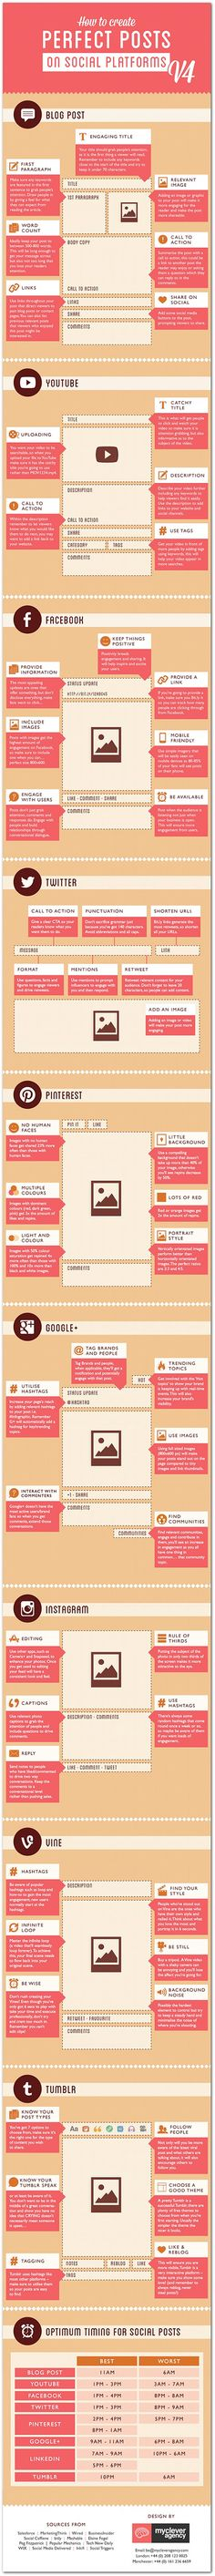 [INFOGRAPHIC] Guide to Perfect Social Media Posts